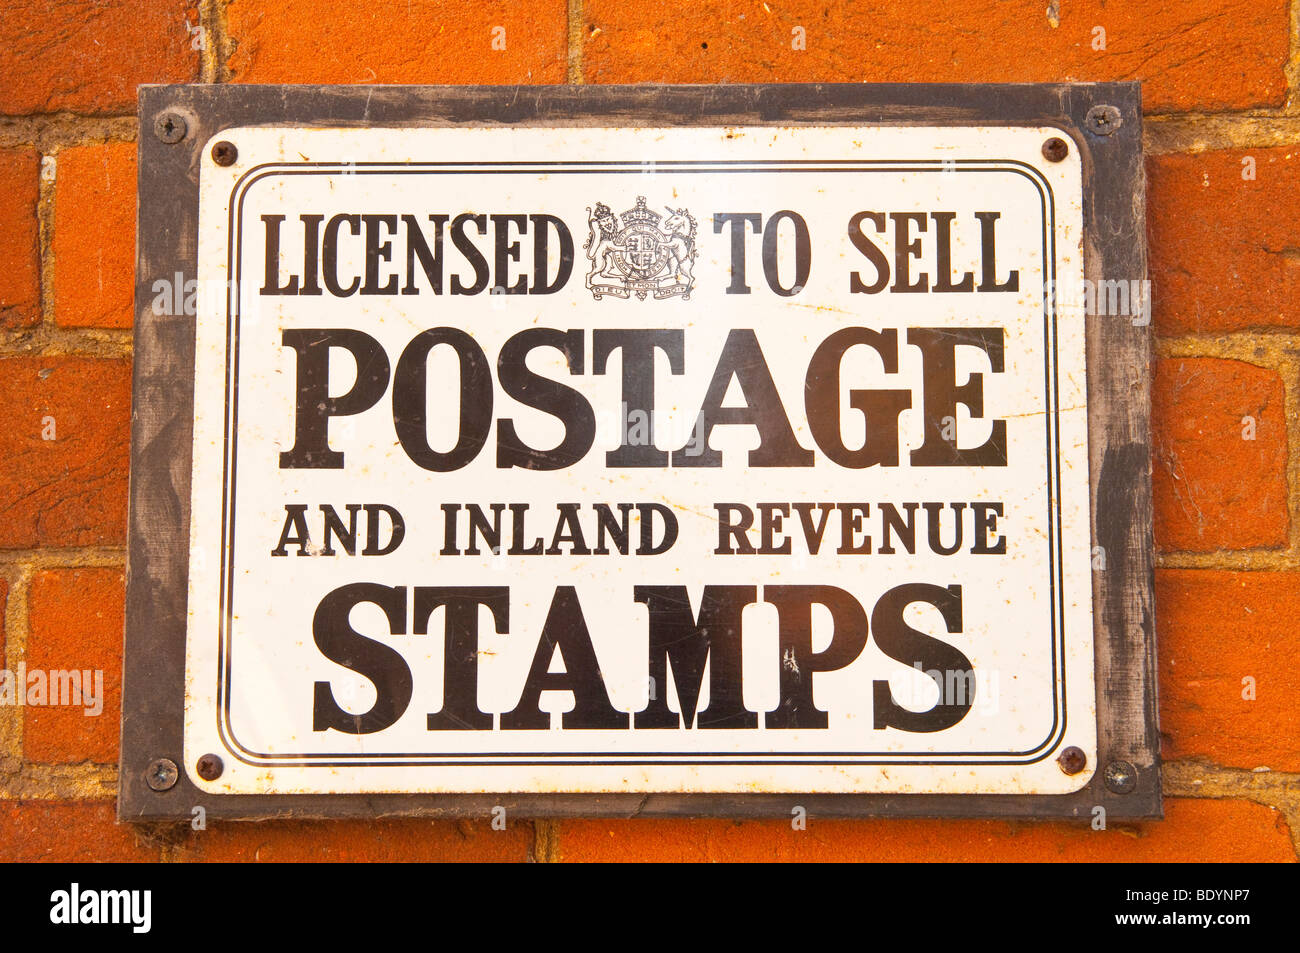 vintage signs stockfotos vintage signs bilder alamy. Black Bedroom Furniture Sets. Home Design Ideas